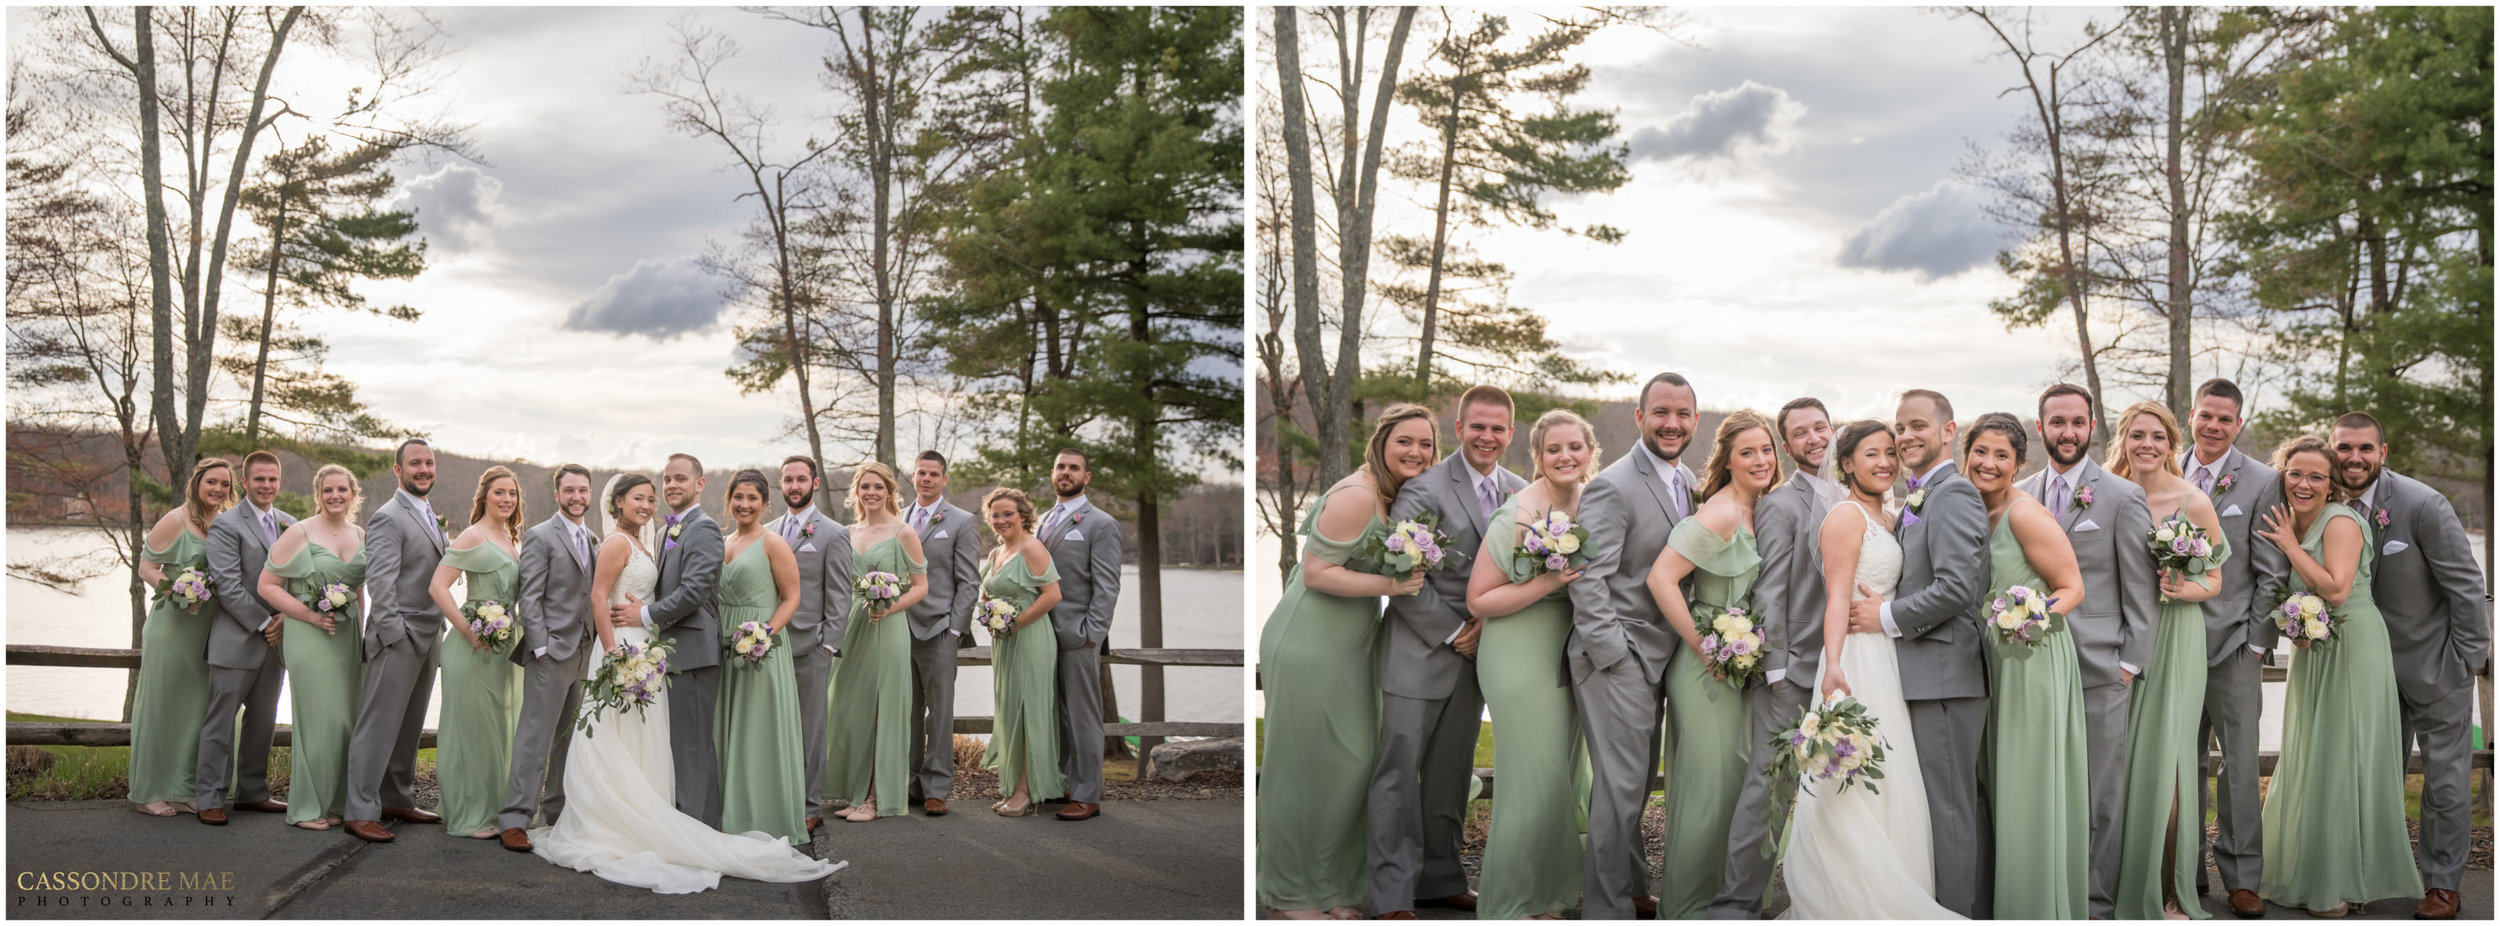 Cassondre Mae Photography Woodloch Resort Wedding 28.jpg